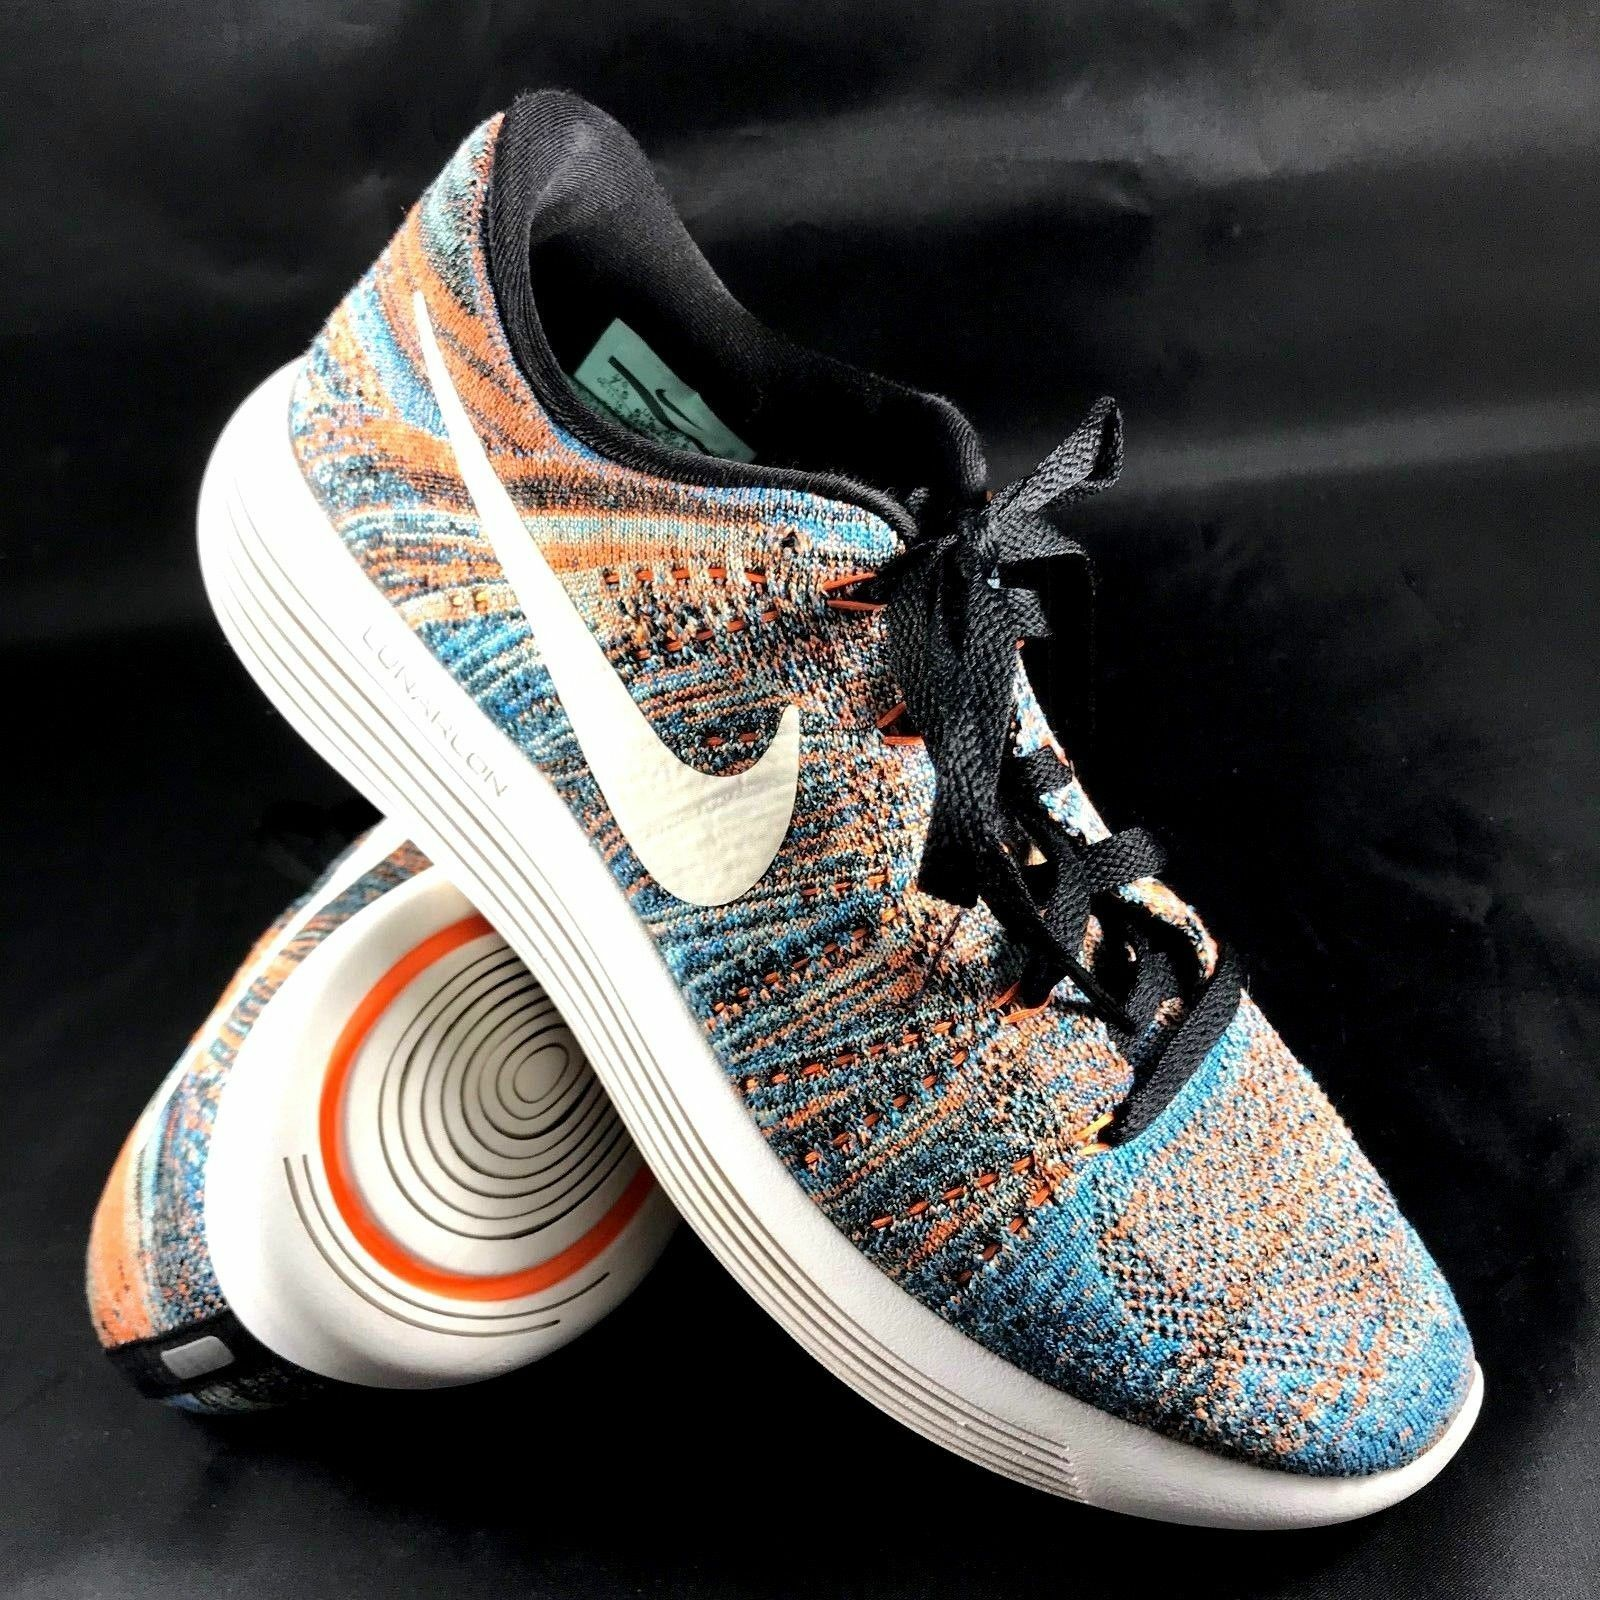 a41190b67ad988 Nike LunarEpic Low Flyknit Multi-color bluee orange 843764 003 Sizes 7.5